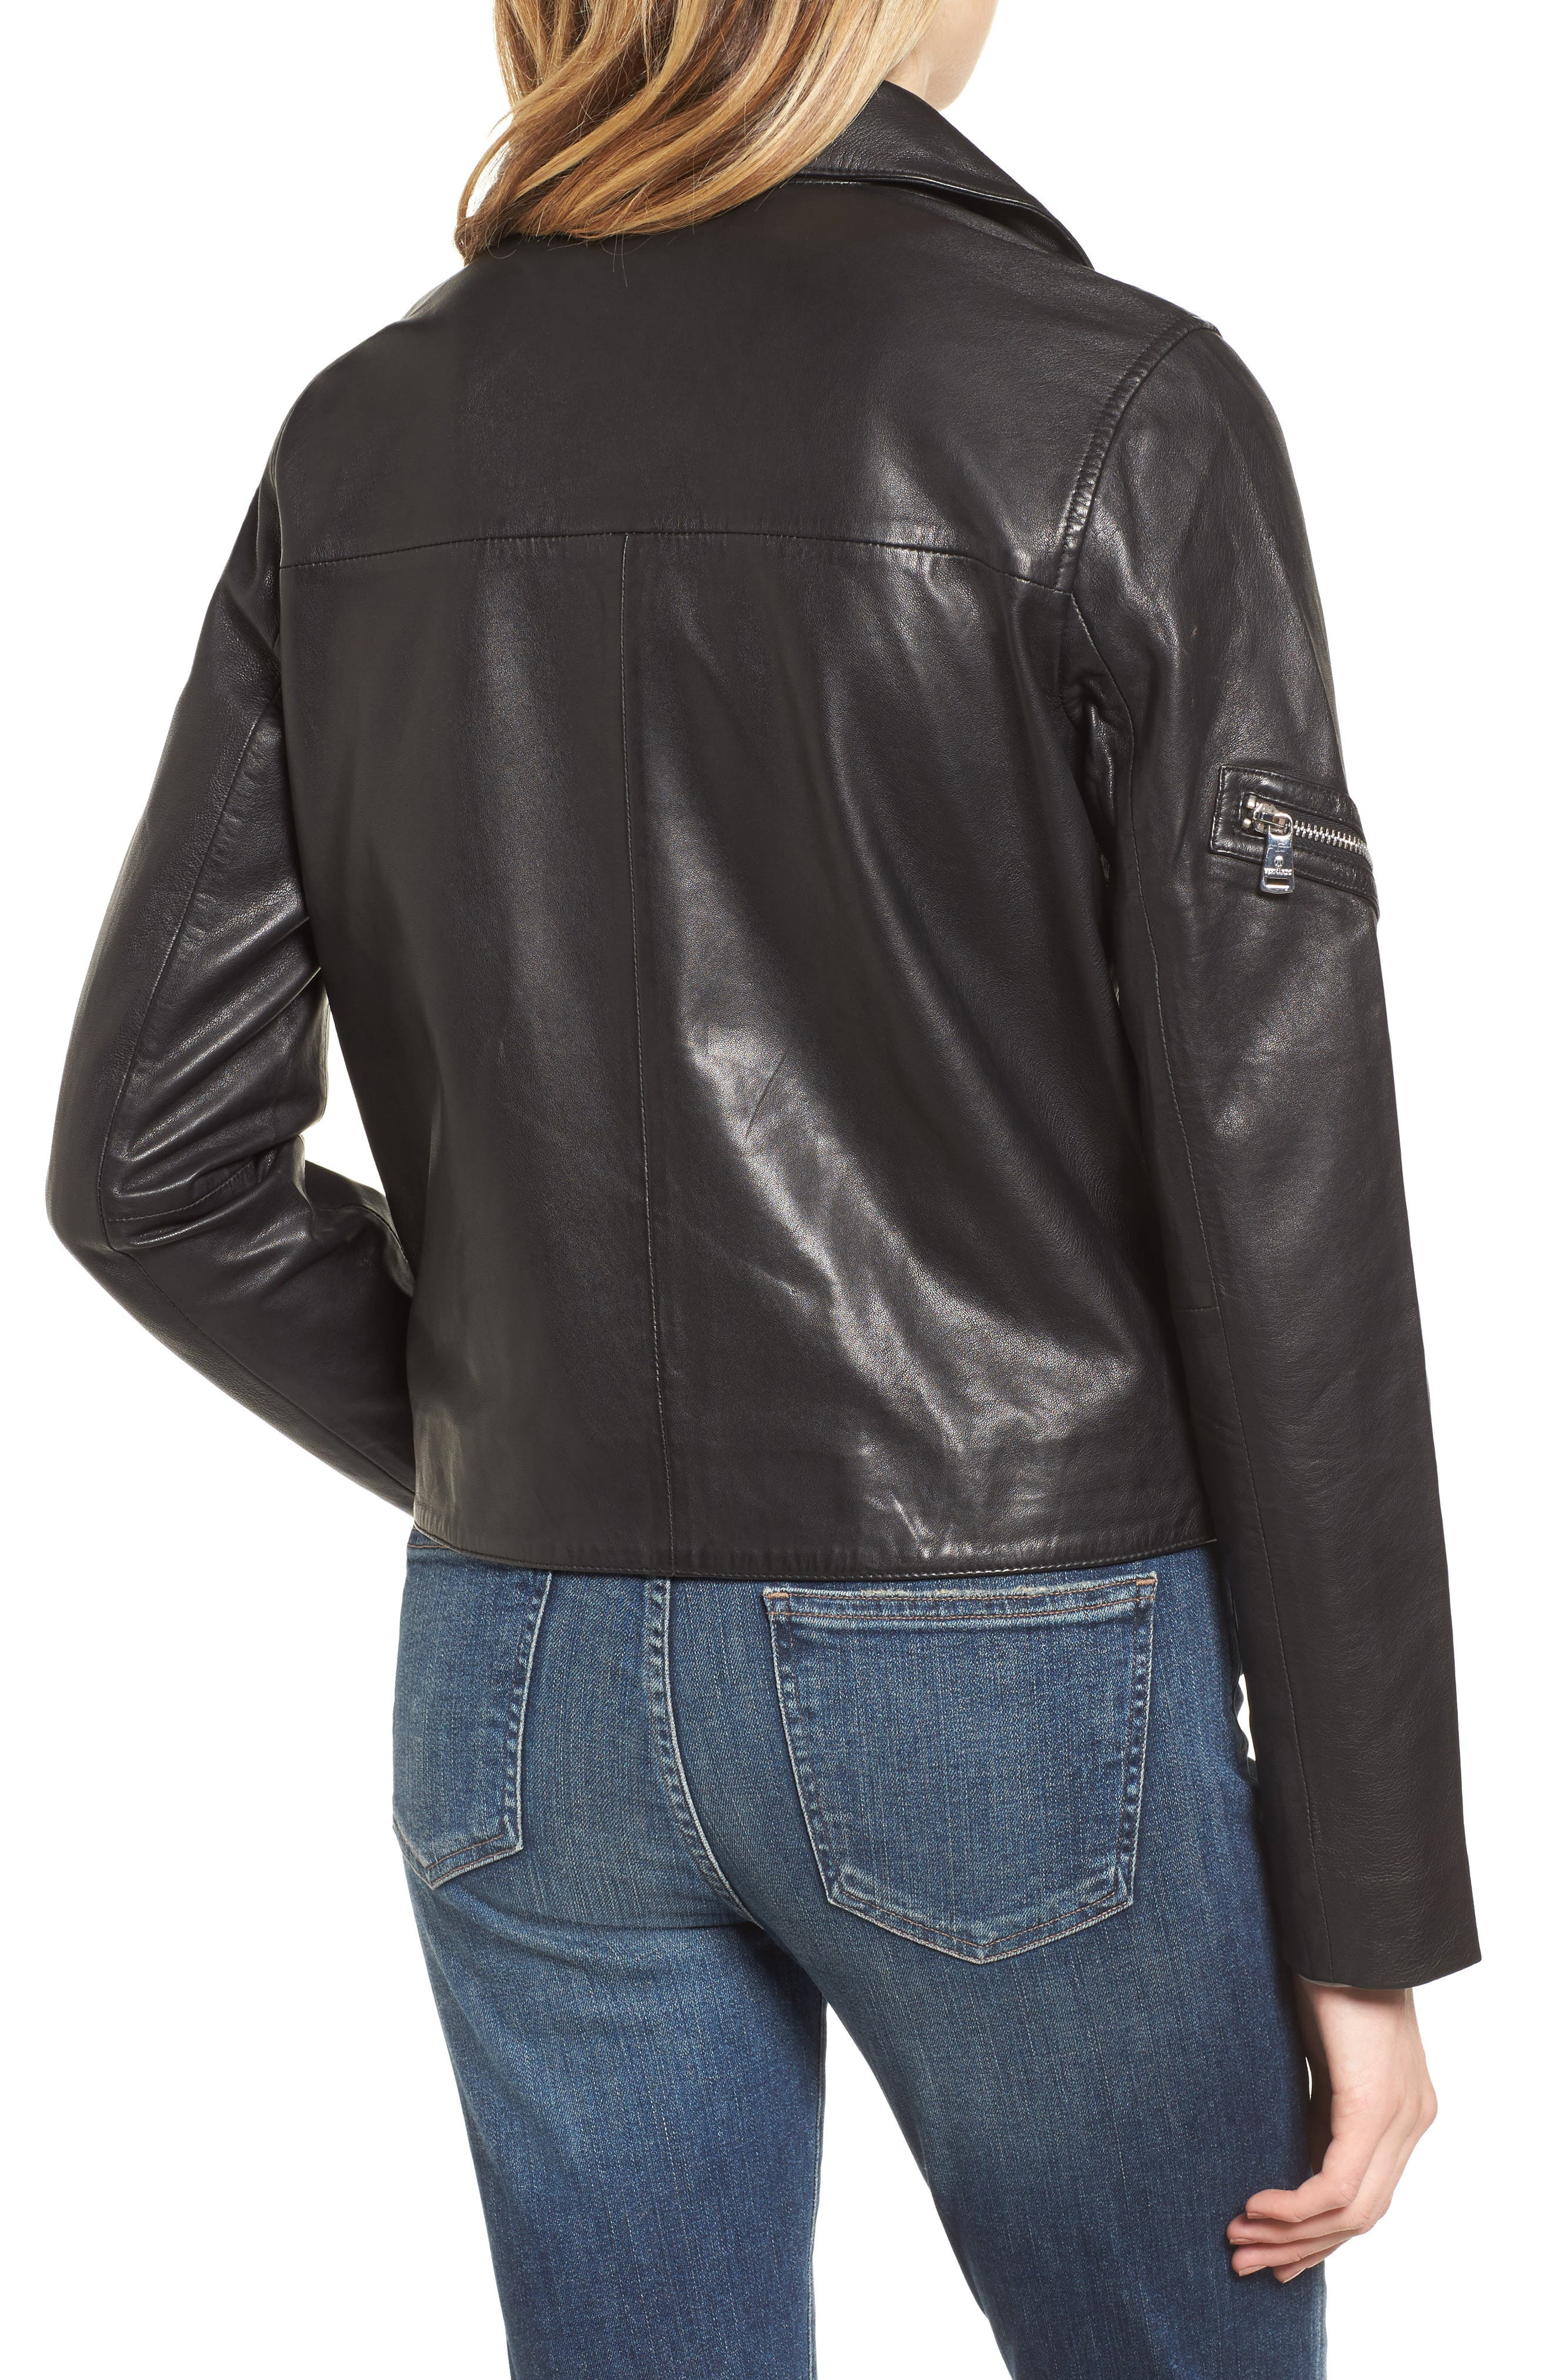 Kirwin Leather Moto Jacket,                             Alternate thumbnail 2, color,                             Black